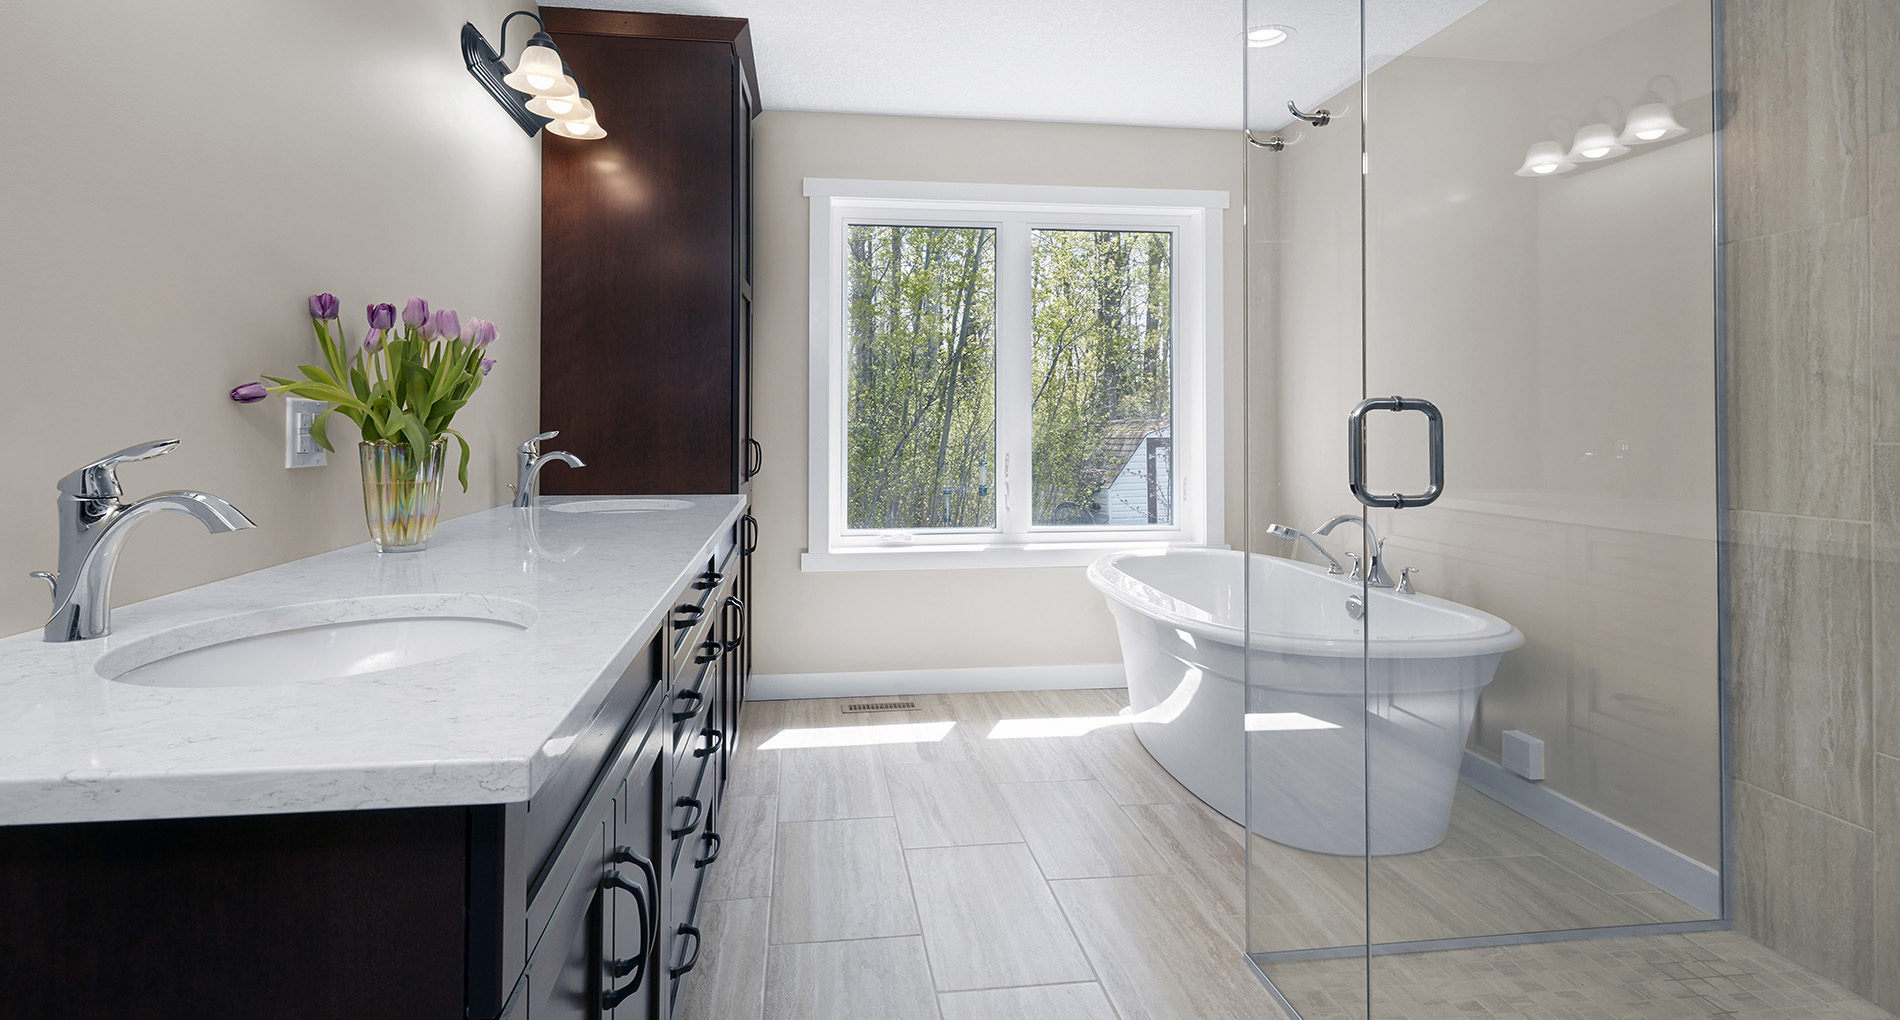 Bathroom Renovations & Design in Edmonton | Alair Homes Edmonton